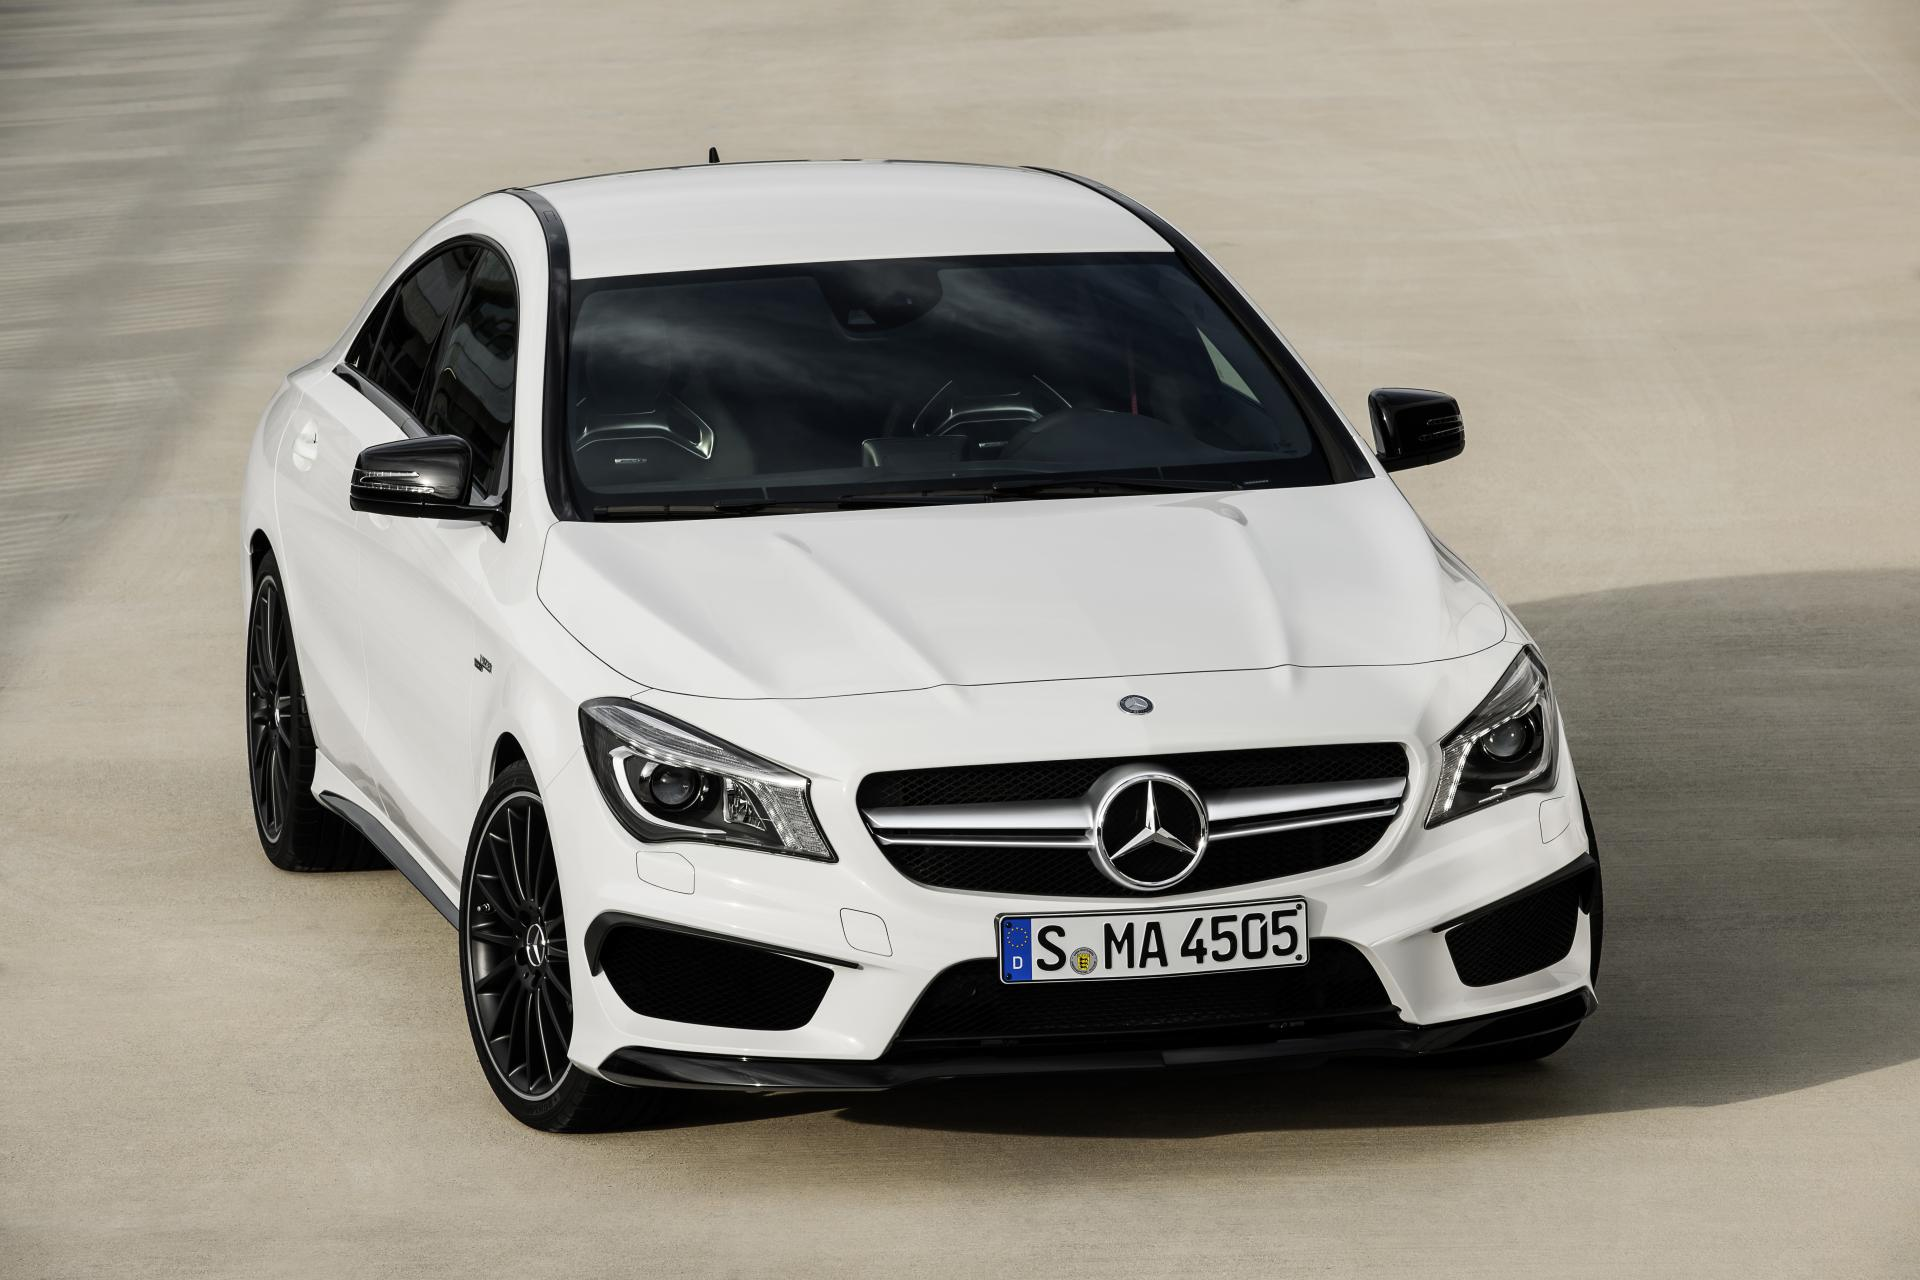 2014 mercedes benz cla 45 amg news and information. Black Bedroom Furniture Sets. Home Design Ideas